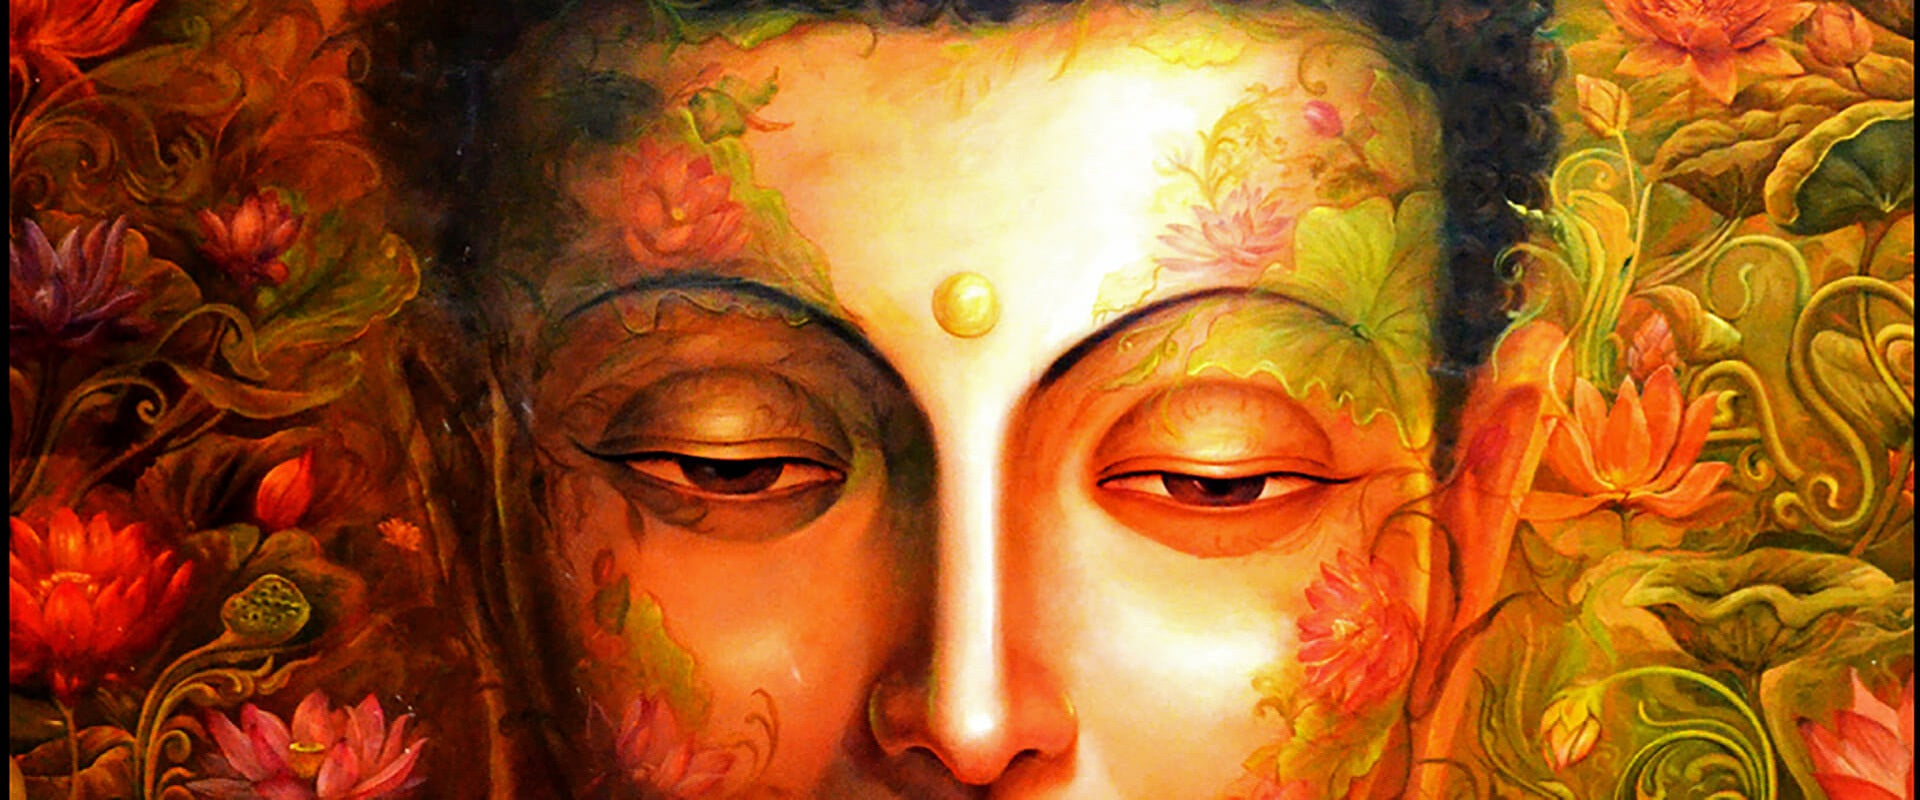 Buddha Paintings | Buy Posters, Frames, Canvas, Digital Art & Large Size Prints